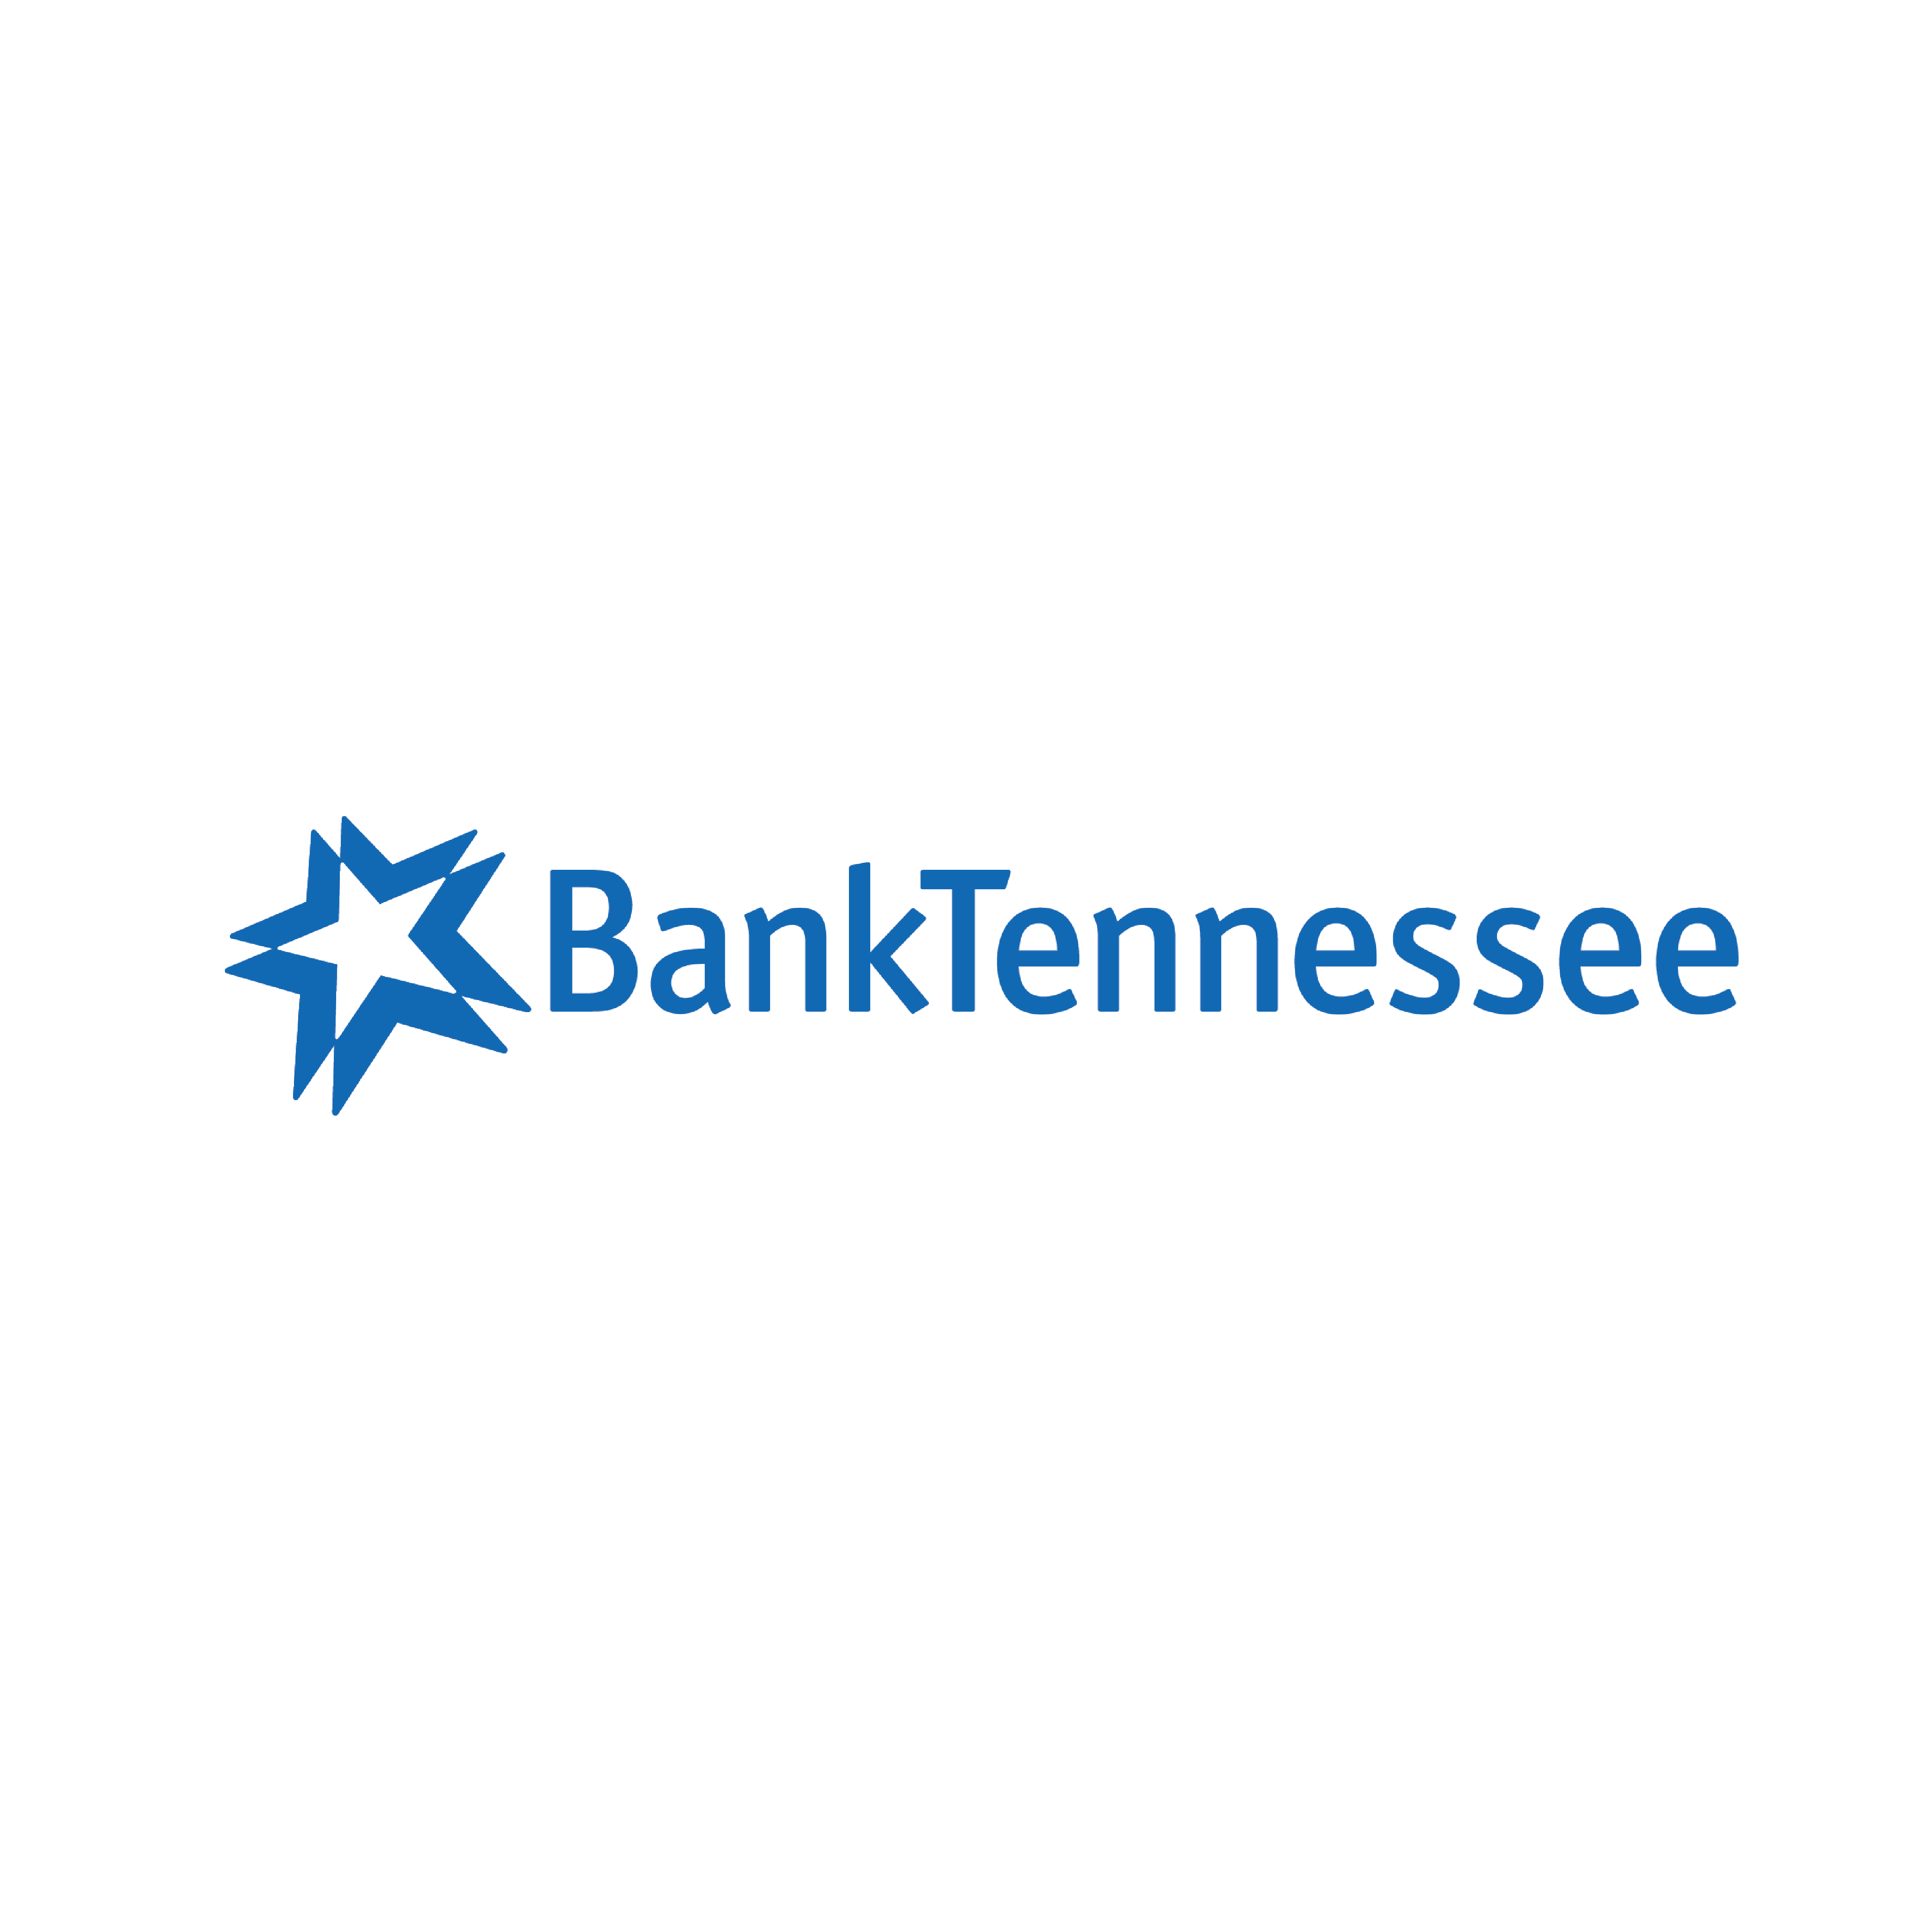 Bank Tennessee